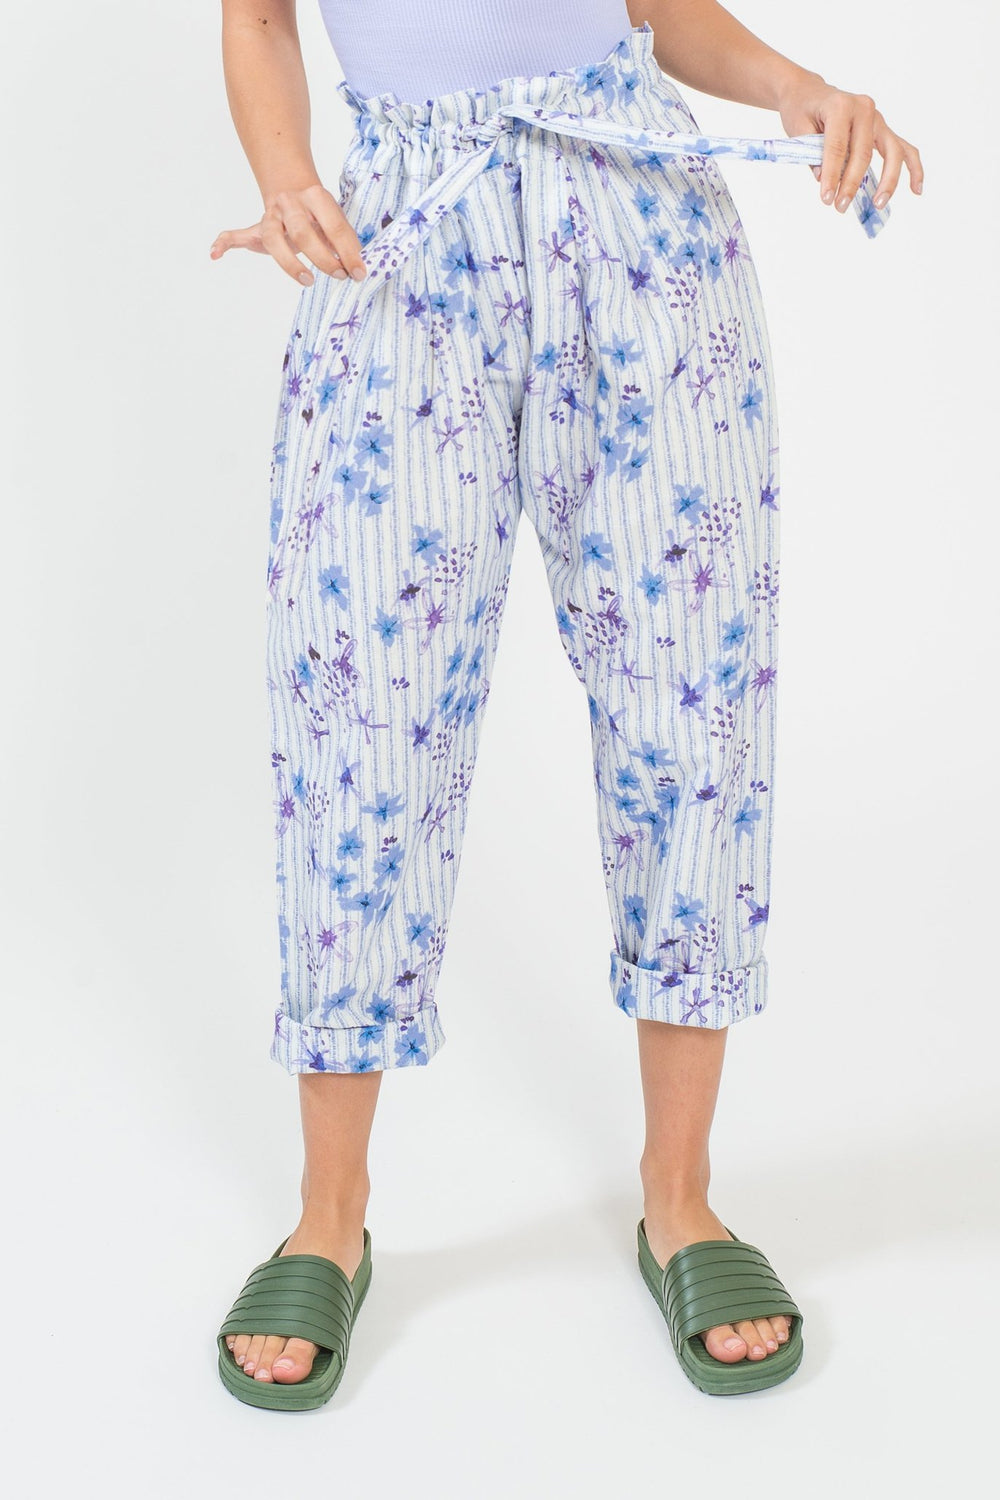 Purple Queen Paper Bag Pants - shopsigal